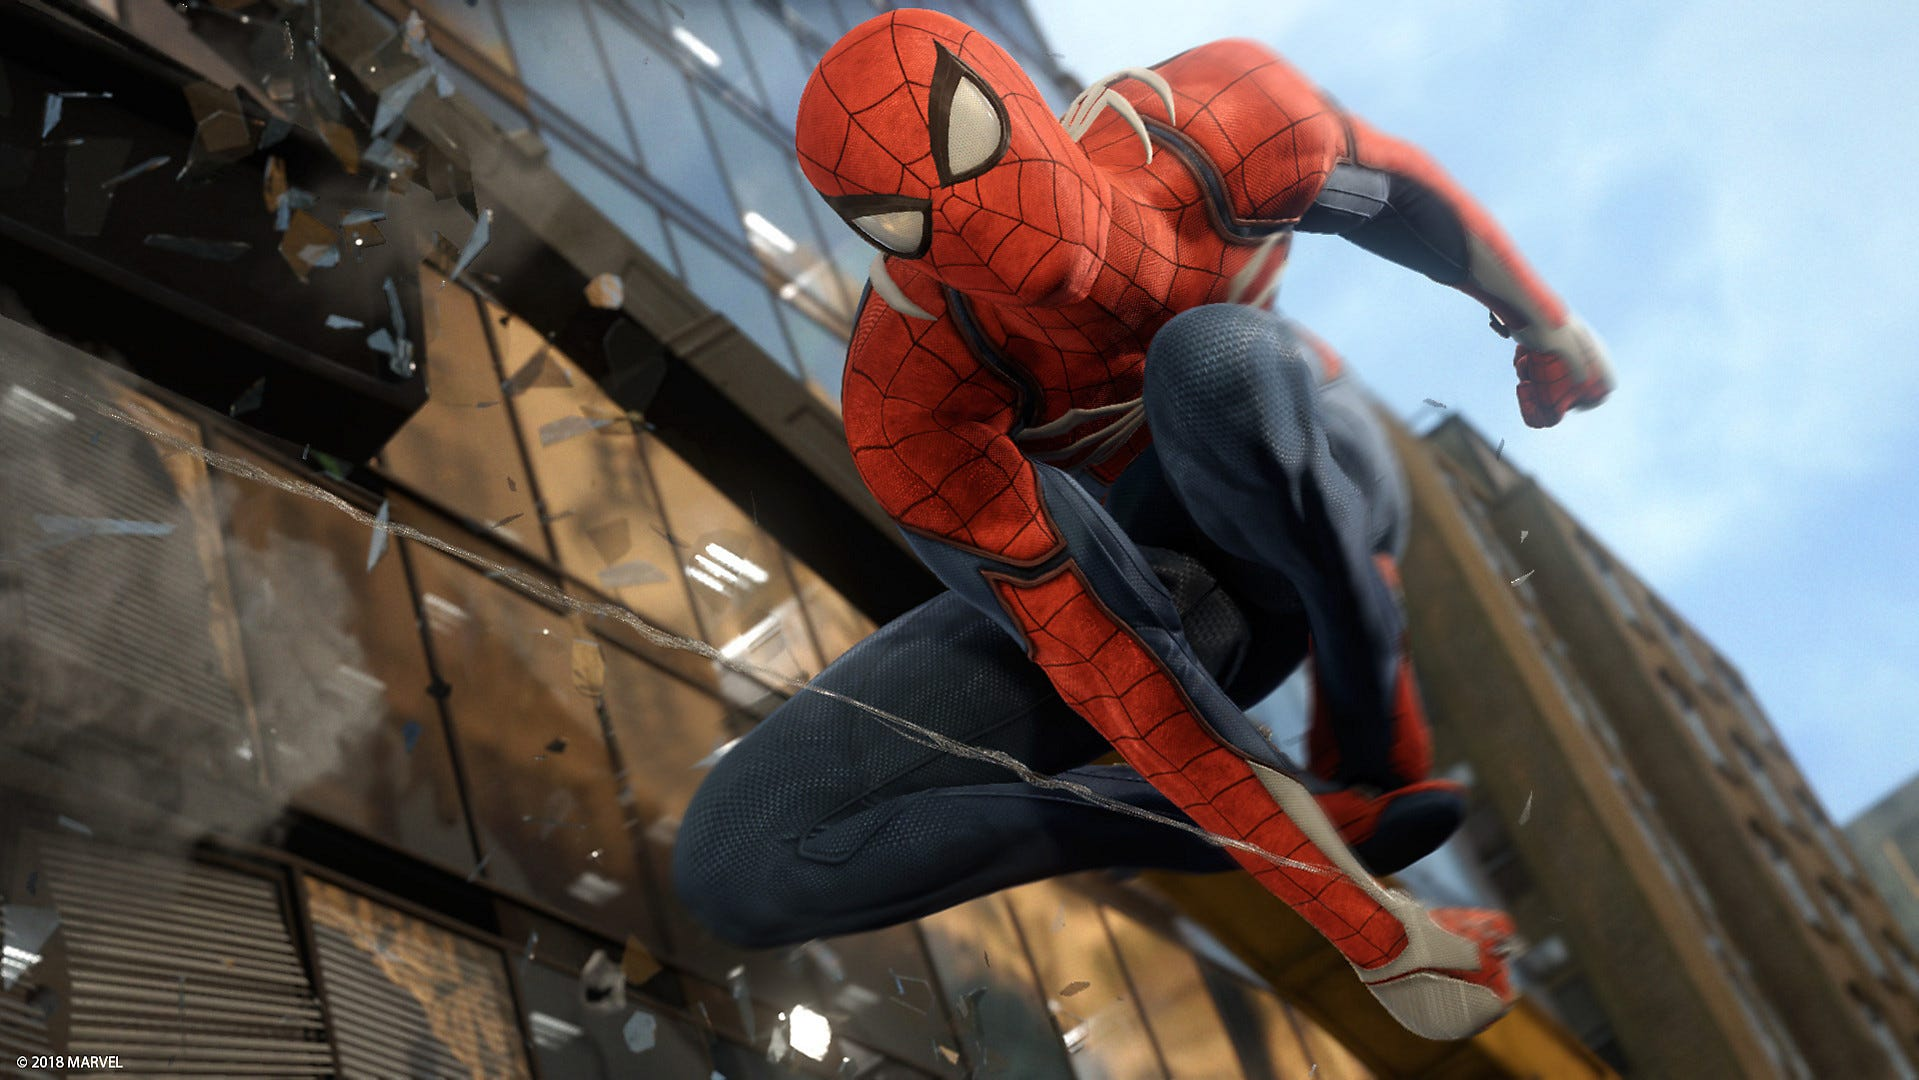 "1. Spider-Man (PS4) Sony sold 3.3 million copies of Marvel's ""Spider-Man"" within the first three days of release, setting a new sales record for PS4 games. That edges out the prior record of 3.1 million units sold in the first three days set by ""God of War"" earlier this year. Pre-orders were record-setting as well, at 1 million copies."